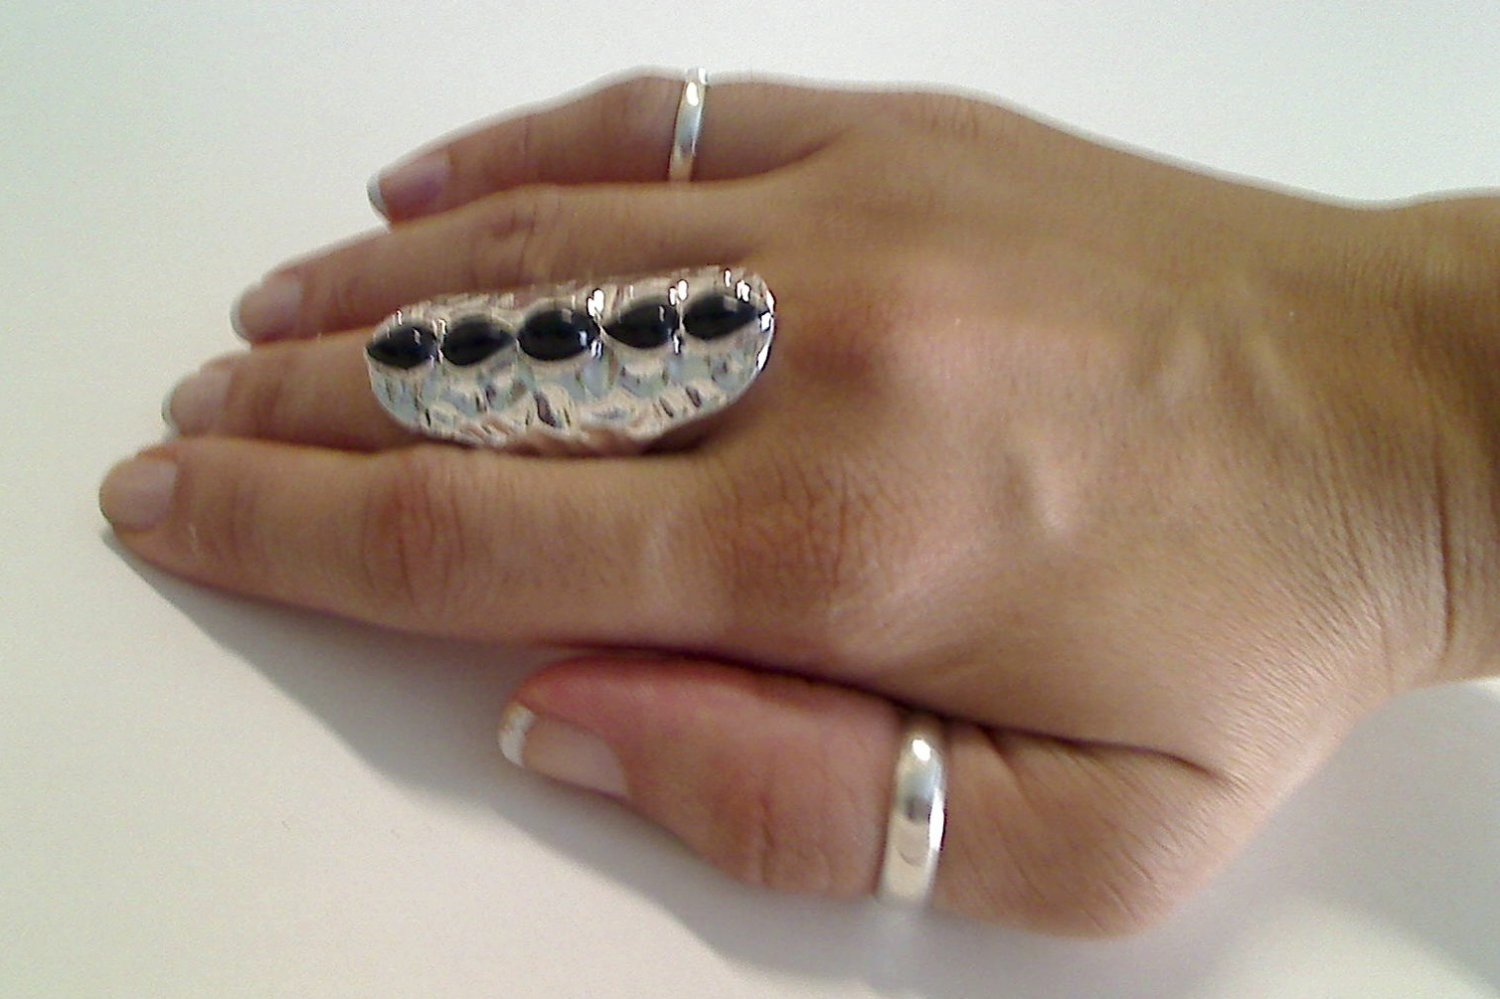 SILVER KNUCKLE 5 BLACK STONE RING SIZES 8 AND 9